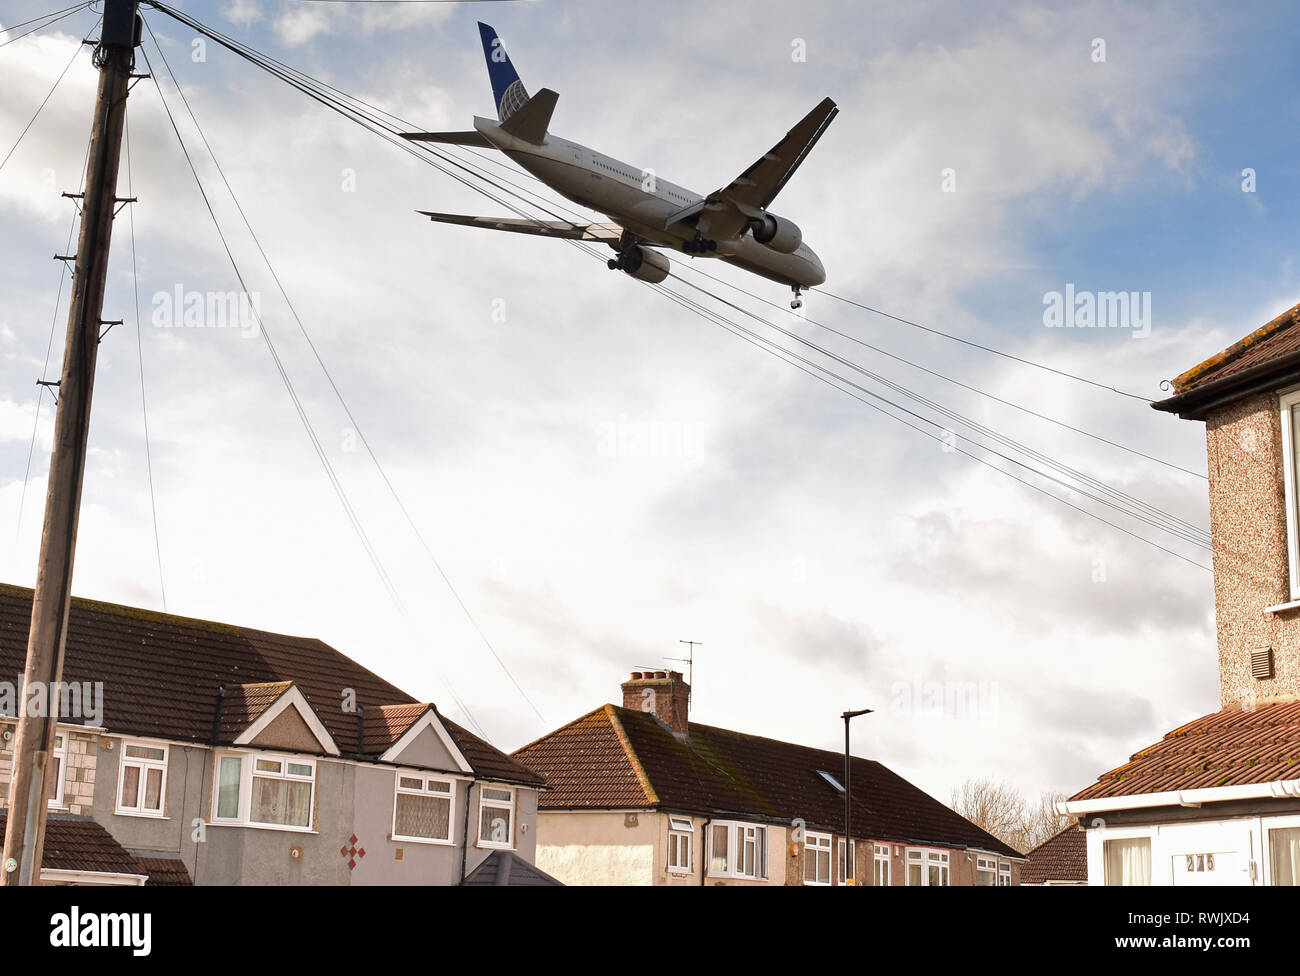 Low Flying Aircraft Landing at Heathrow Airport, London over Houses - Stock Image